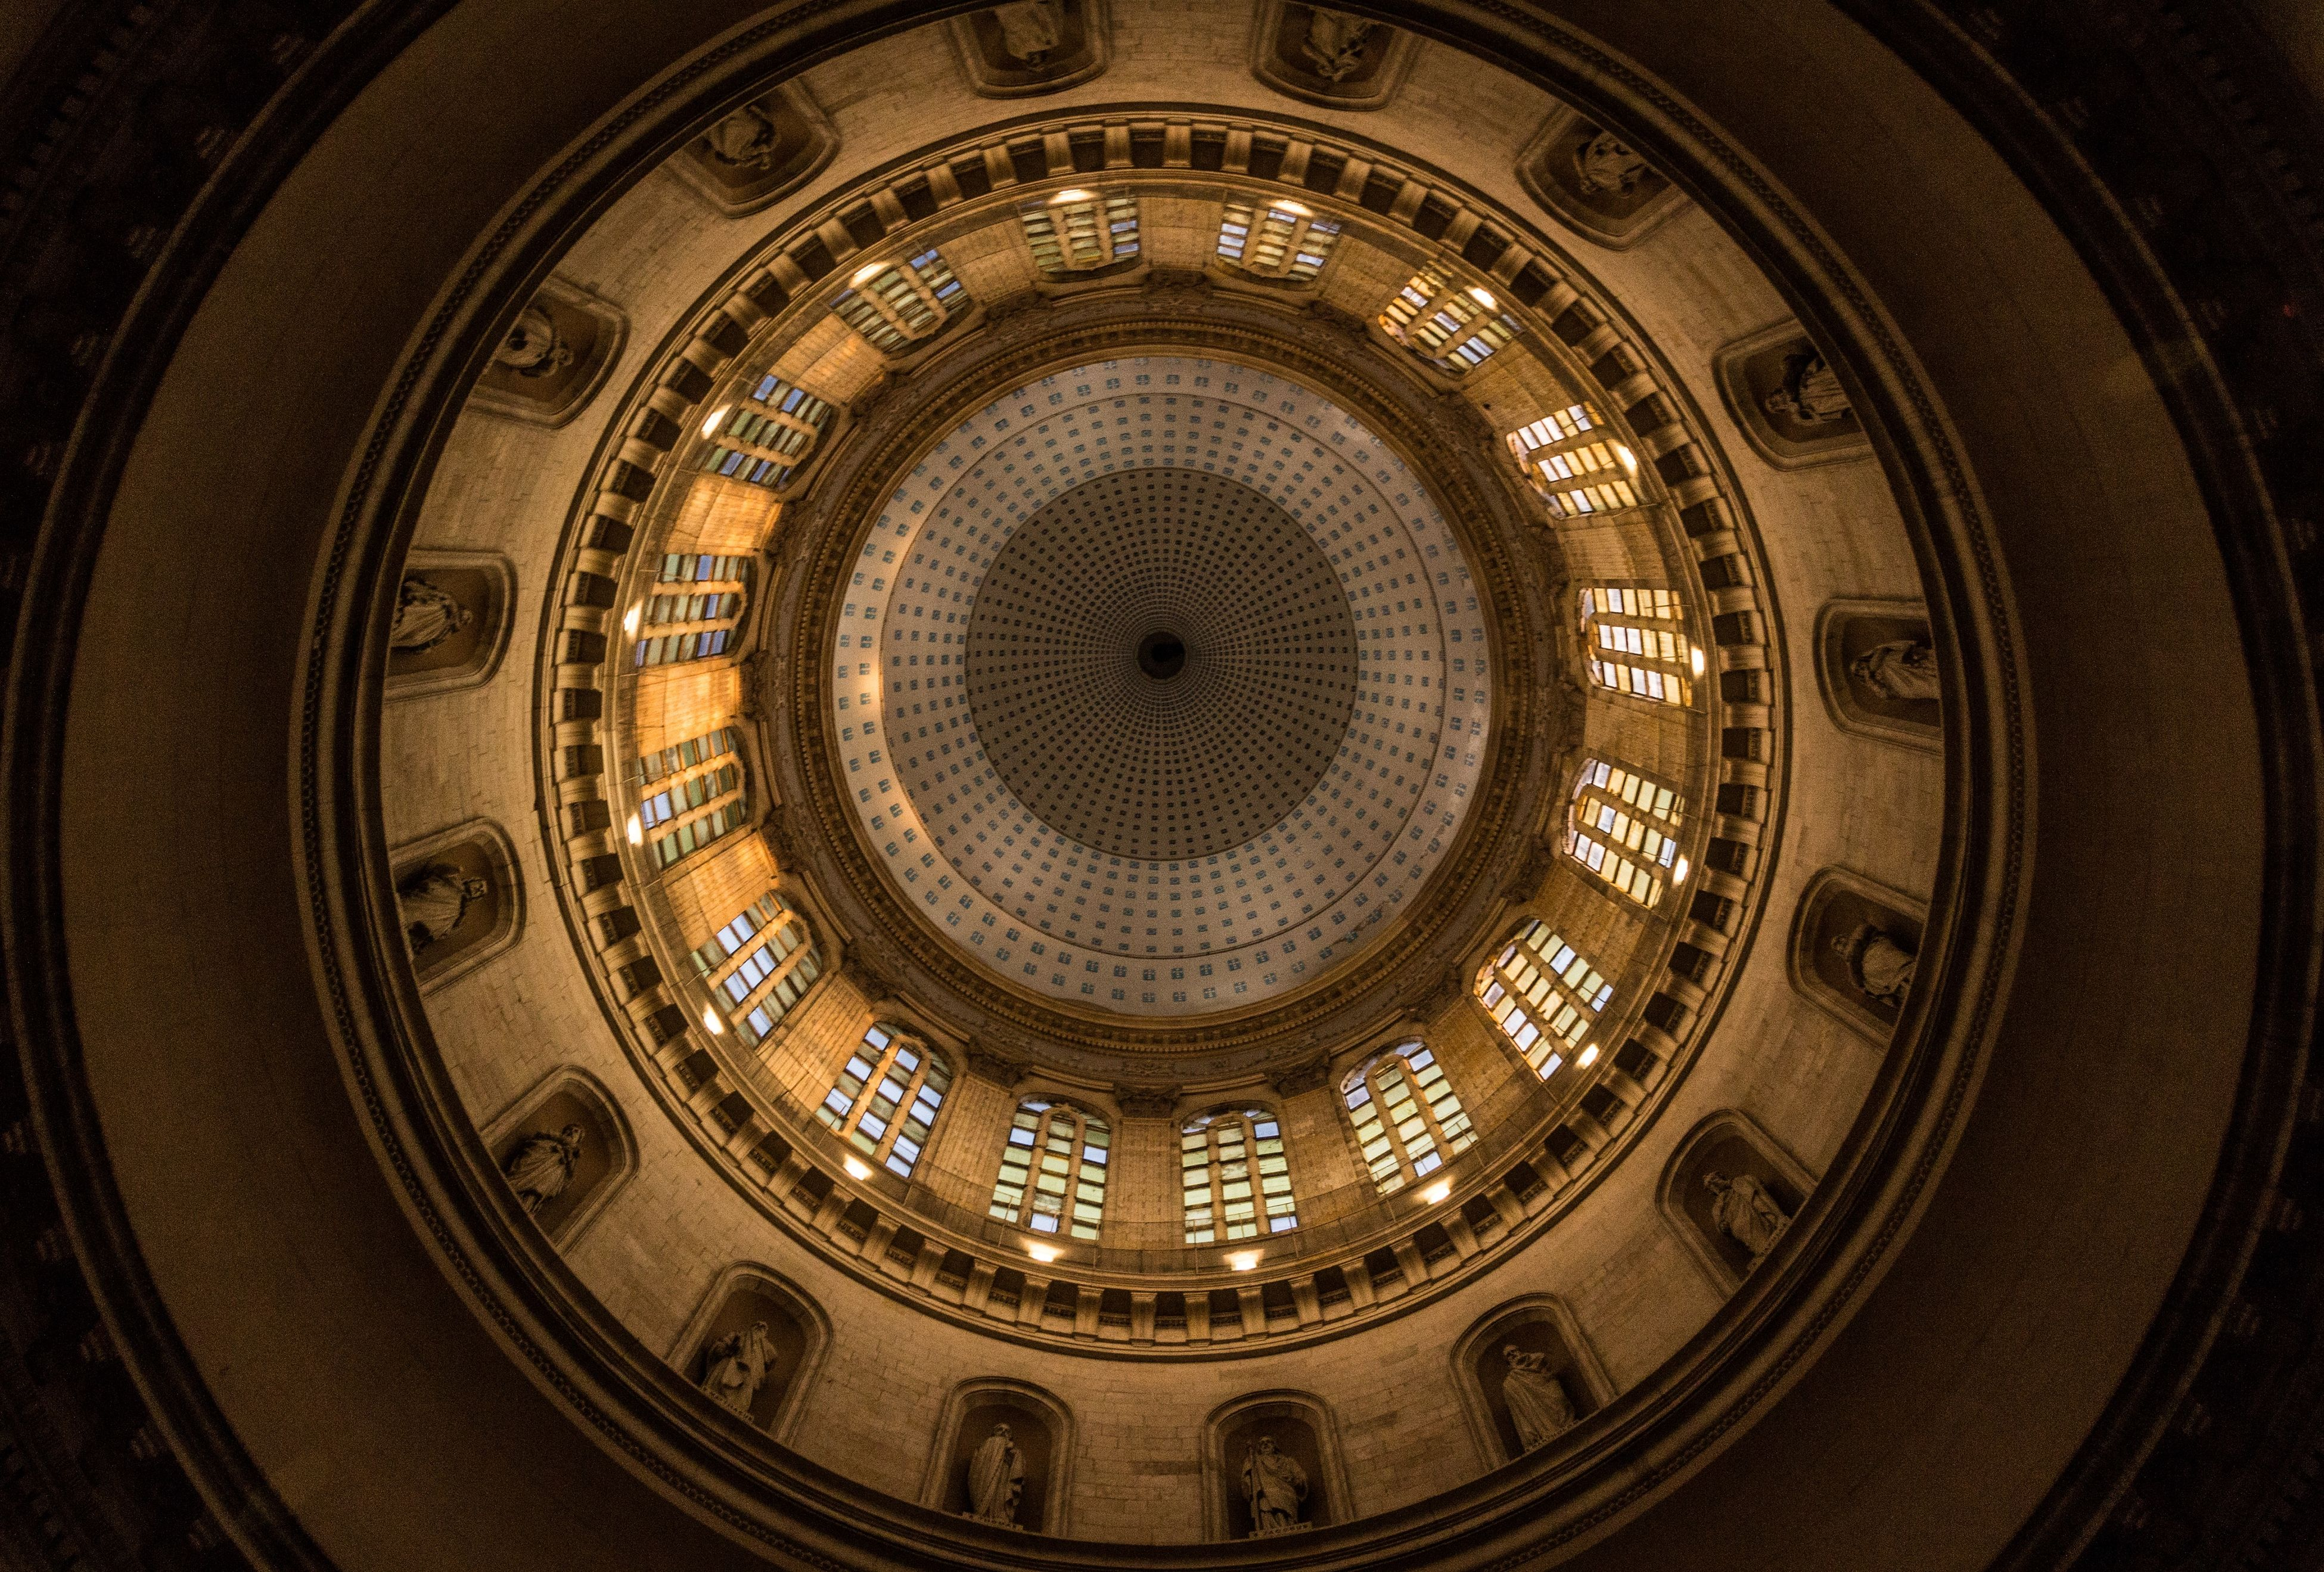 indoors, circle, architecture, directly below, built structure, pattern, design, time, low angle view, geometric shape, famous place, clock, architectural feature, history, ceiling, no people, ornate, travel, spiral staircase, spiral